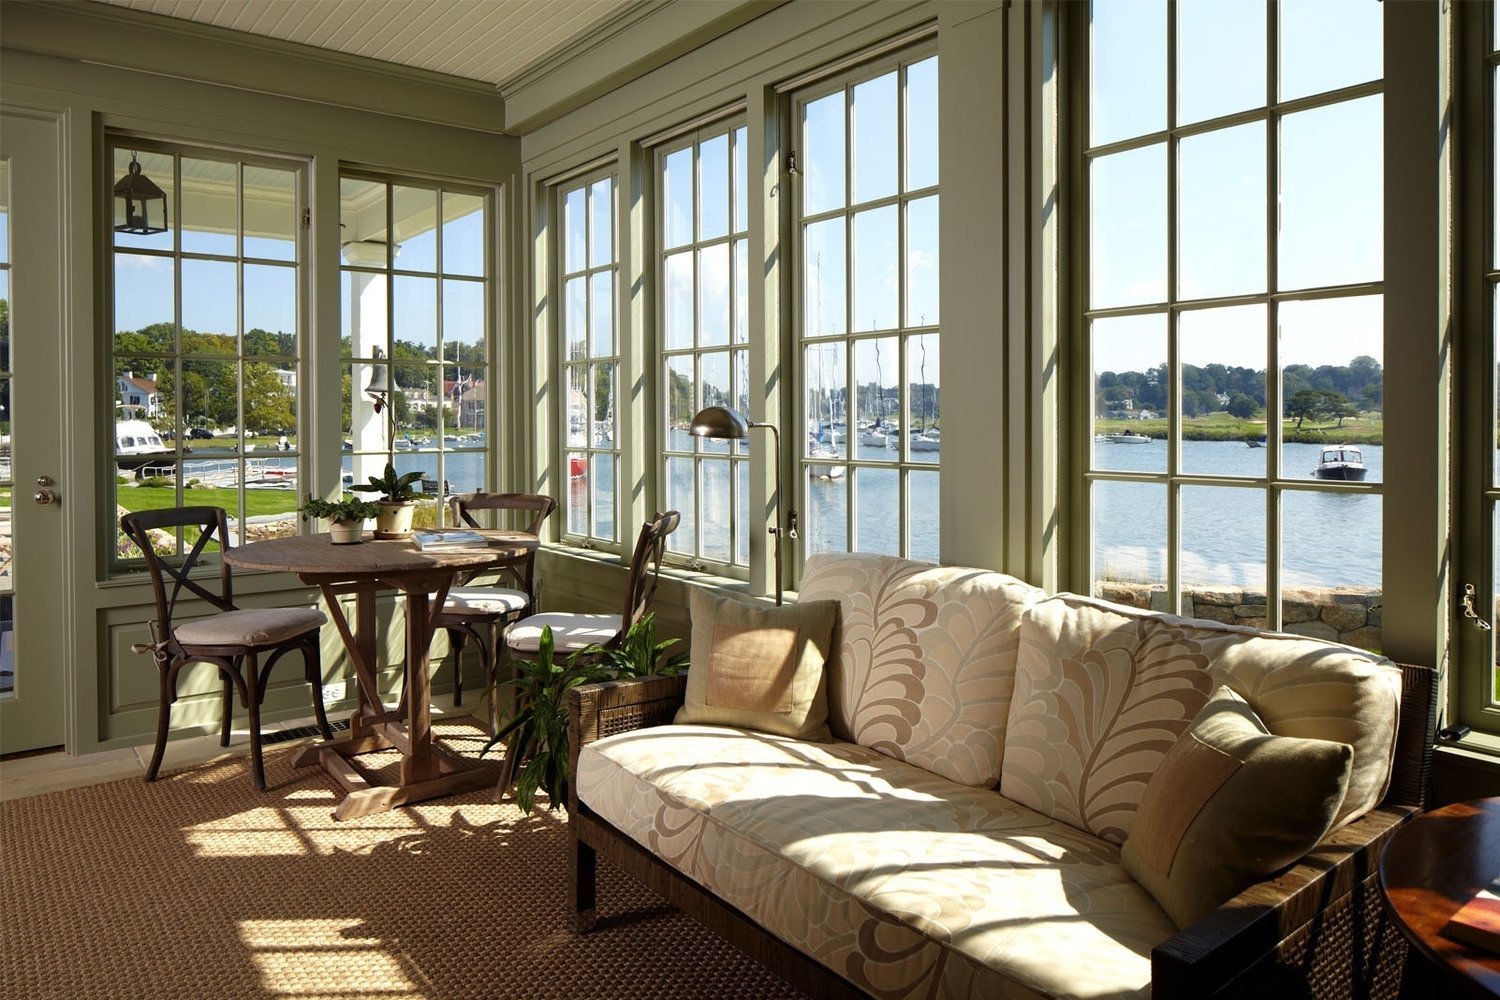 download sunroom ideas on a budget gurdjieffouspensky com sunroom